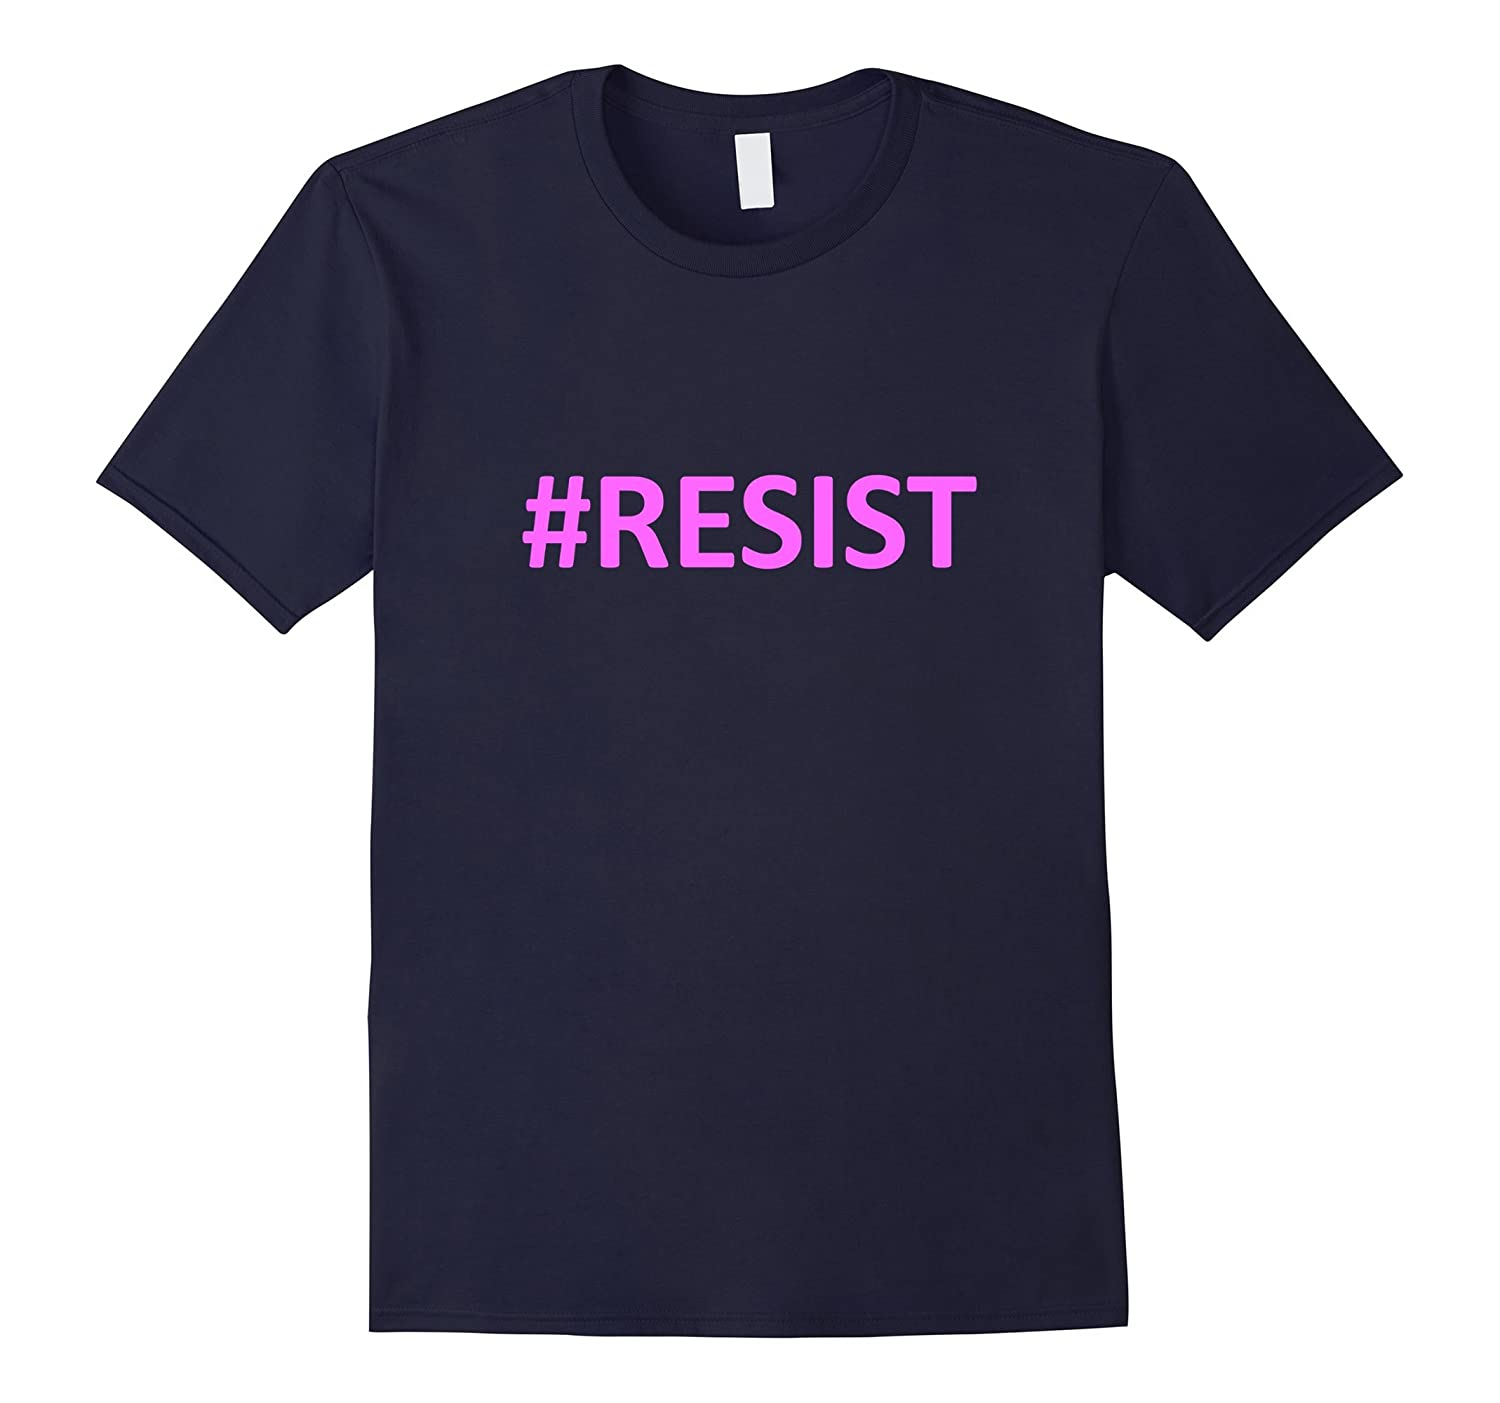 #RESIST Pink for Women's Rights Anti-Trump Resist T-Shirt-TH